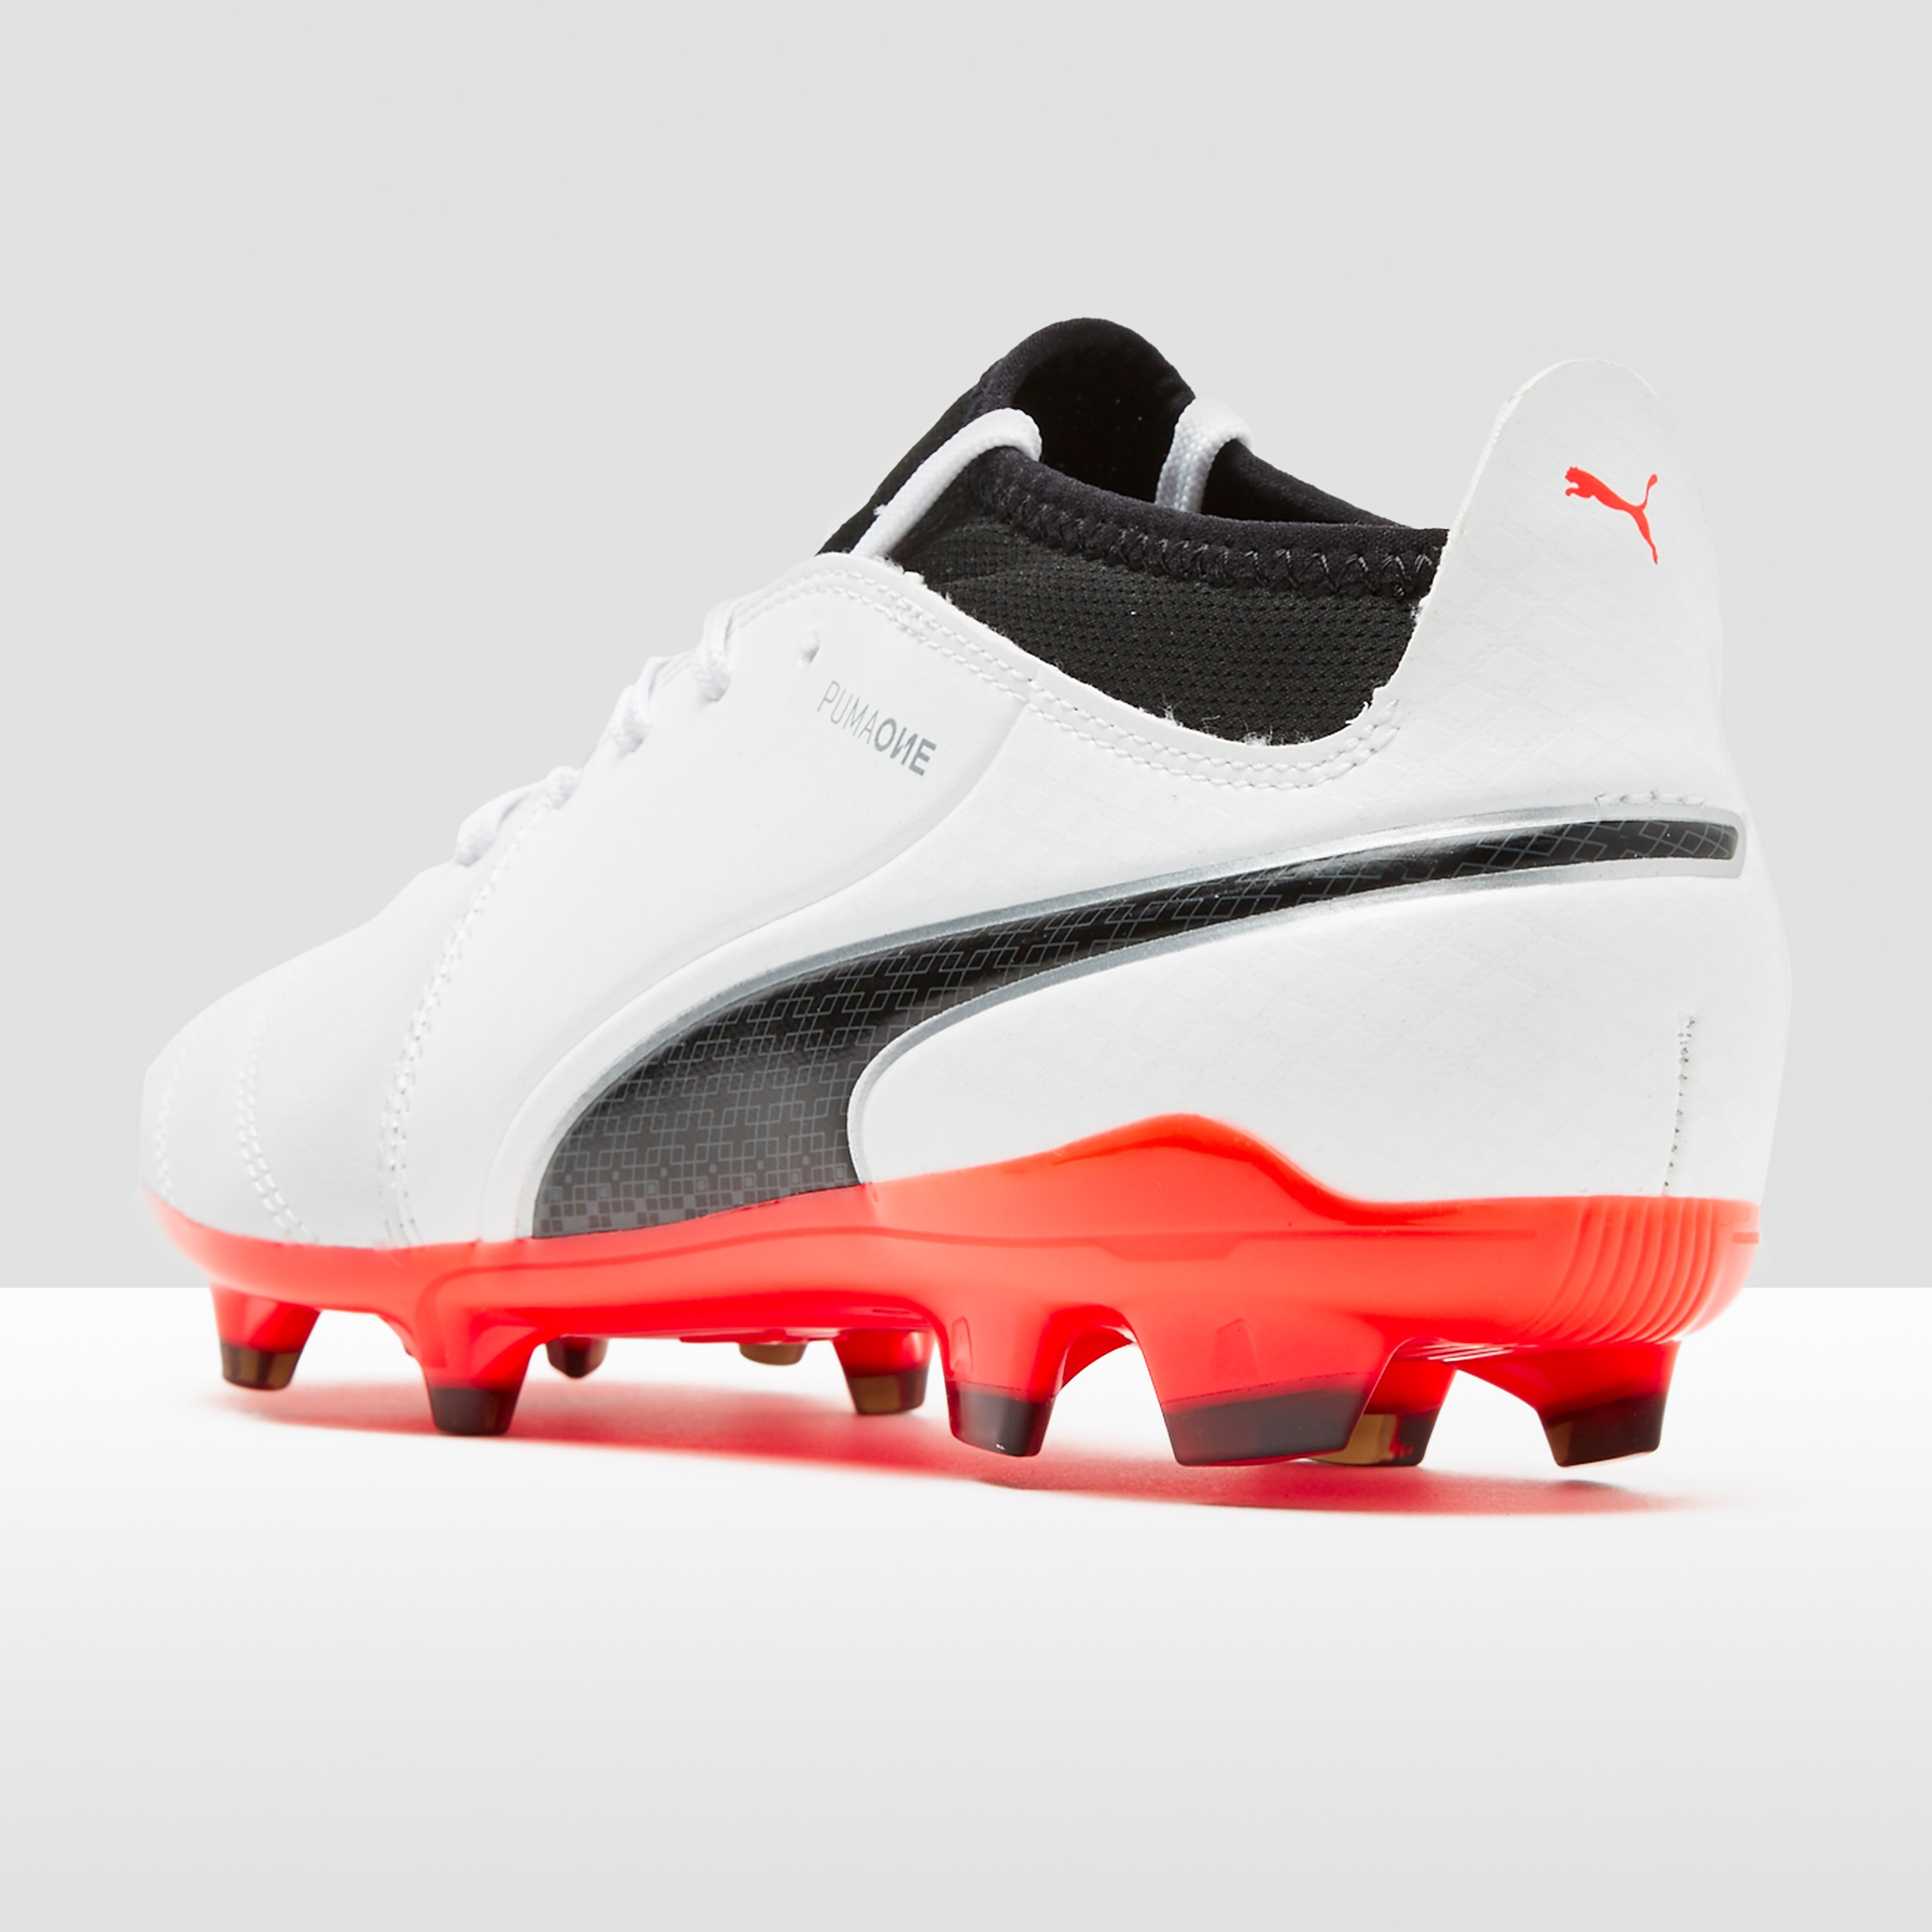 PUMA One 17.3 FG Men's Football Boots